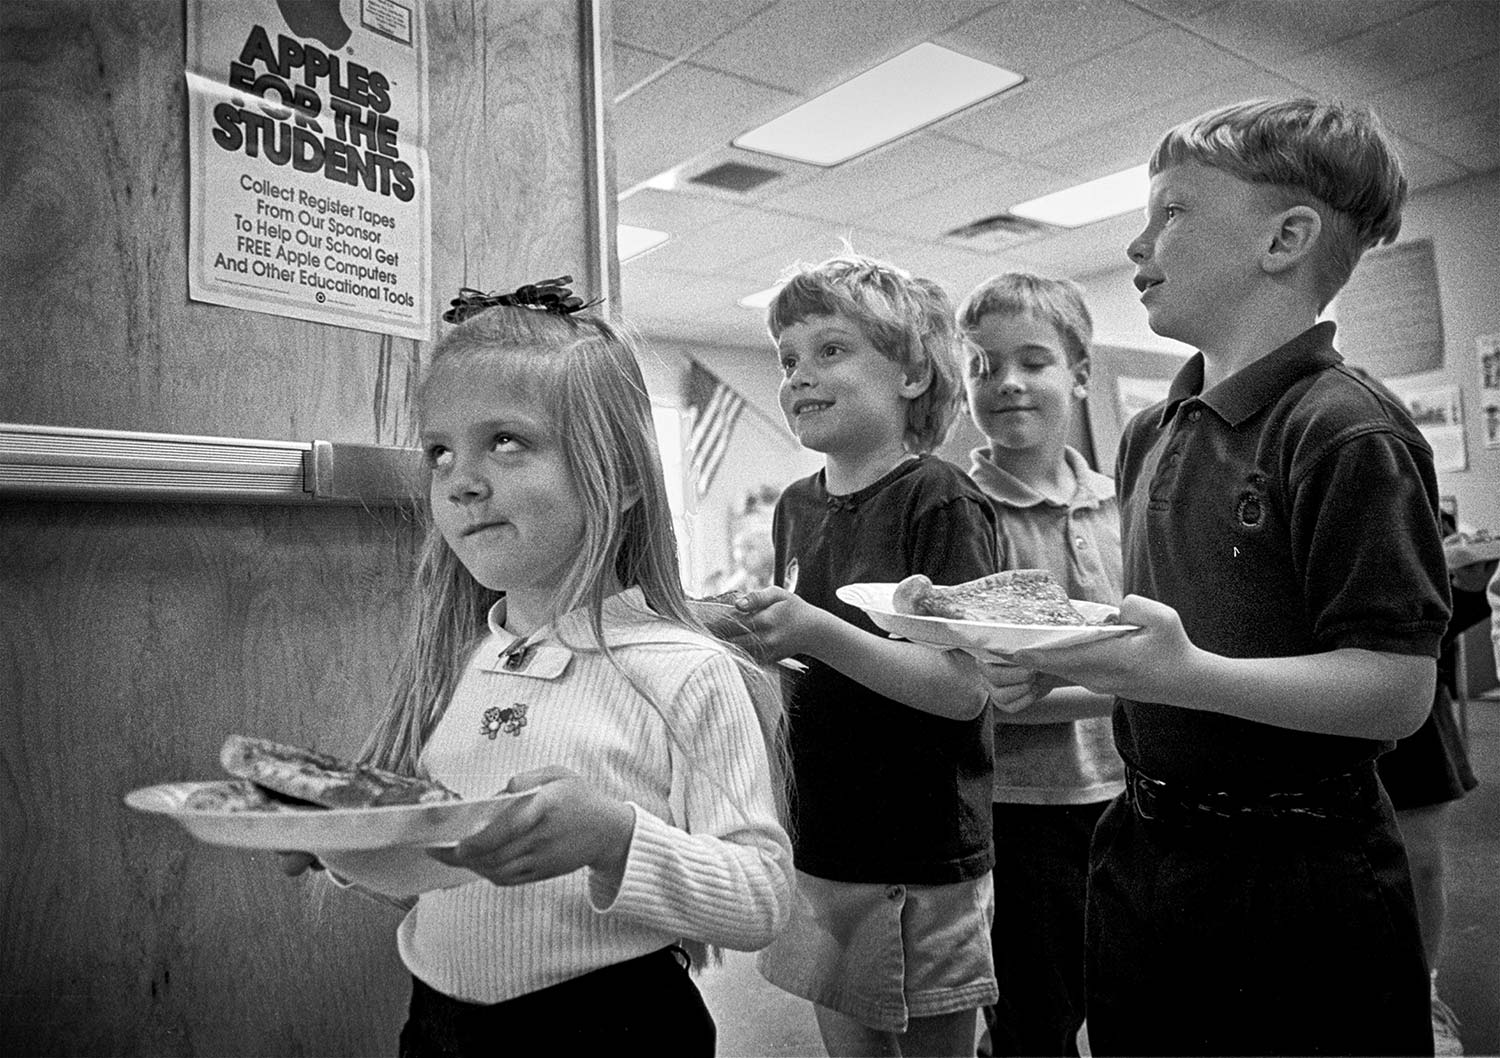 Amber Meredith is not amused by the antics of her classmates  (I.to r.) :Makayla Partin, Joey Shoun, and Chris Poteet, during lunch at Christian Academy of Campbell County.  photo by Joshua Brown  - 1997